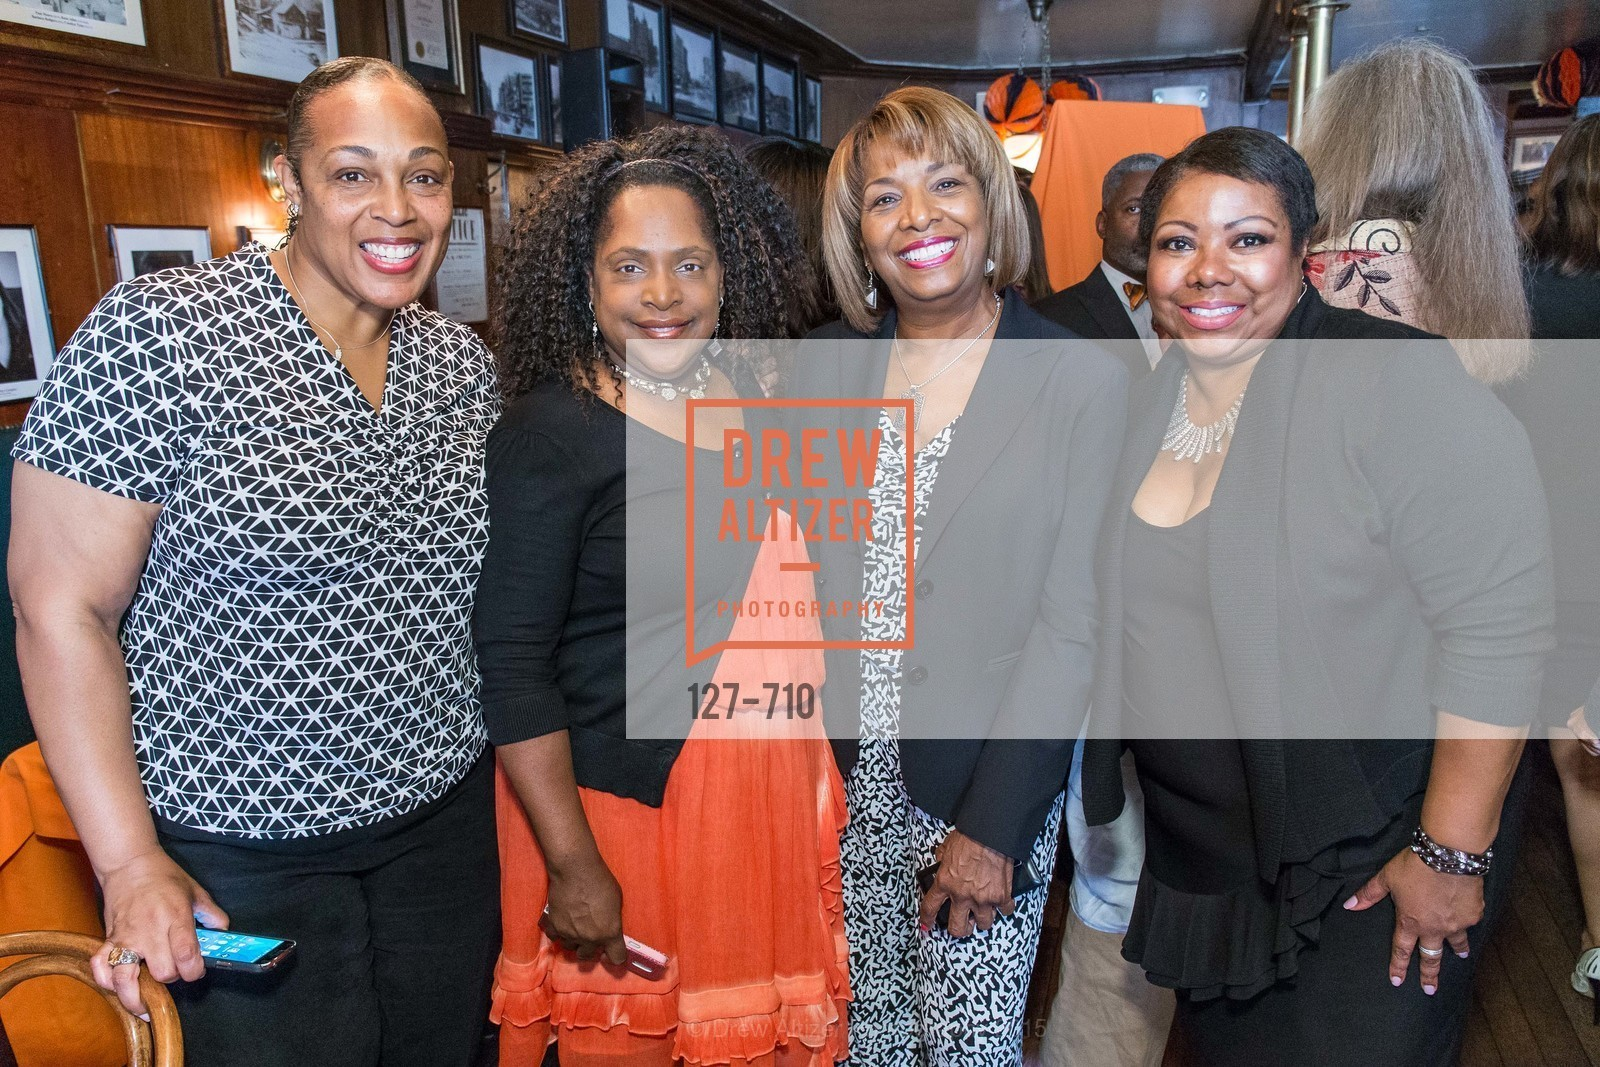 Deanna Roberts, Cheri Dove, Rosie Allen, Sidney Hunter, 3-RING LUNCH CELEBRATION Honoring RENEL BROOKS-MOON, US, June 8th, 2015,Drew Altizer, Drew Altizer Photography, full-service agency, private events, San Francisco photographer, photographer california